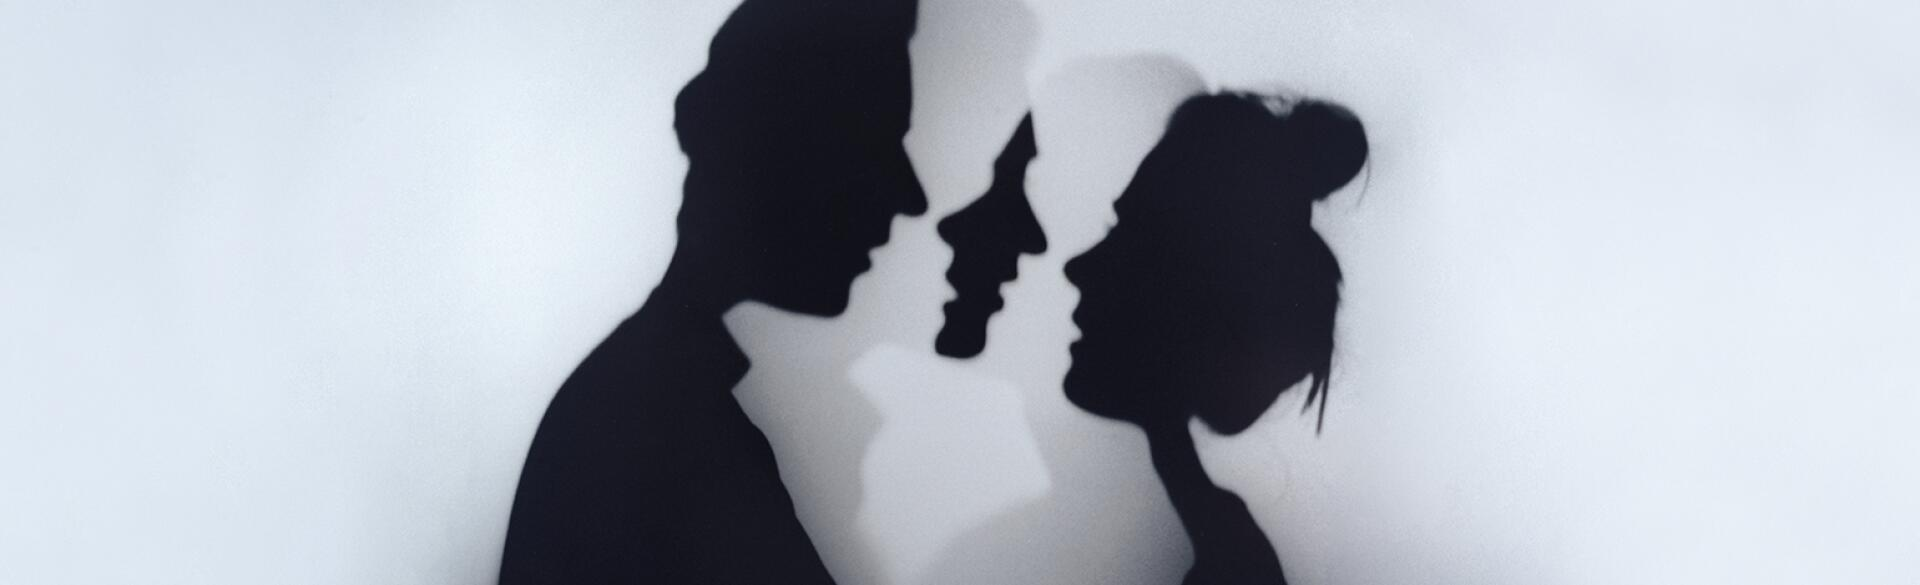 A photo of a woman and man standing face to face.